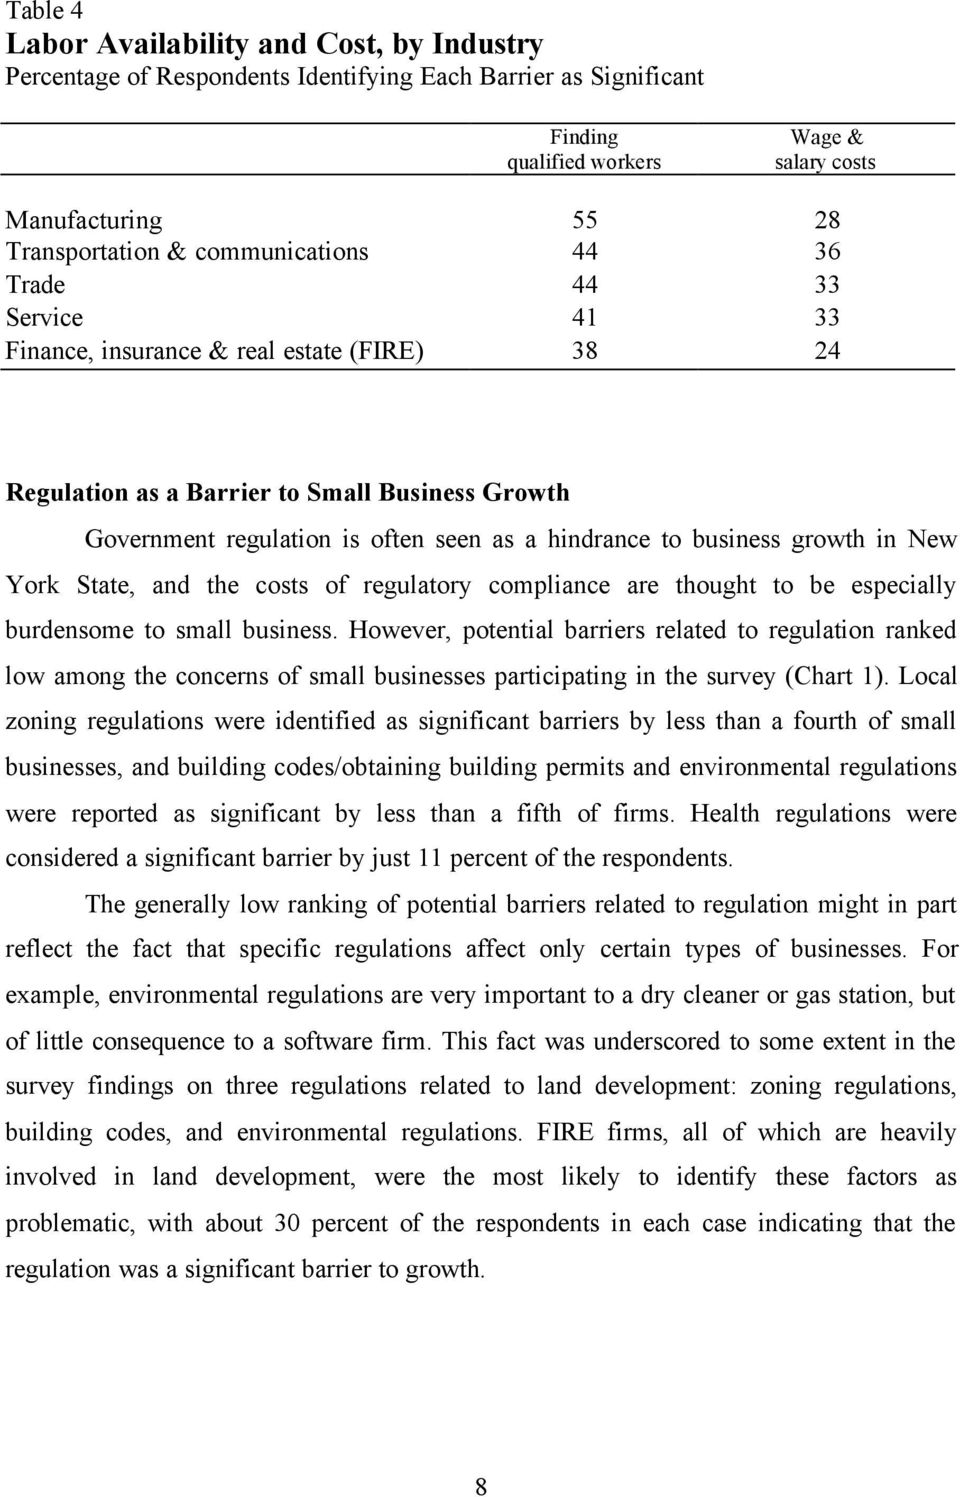 business growth in New York State, and the costs of regulatory compliance are thought to be especially burdensome to small business.